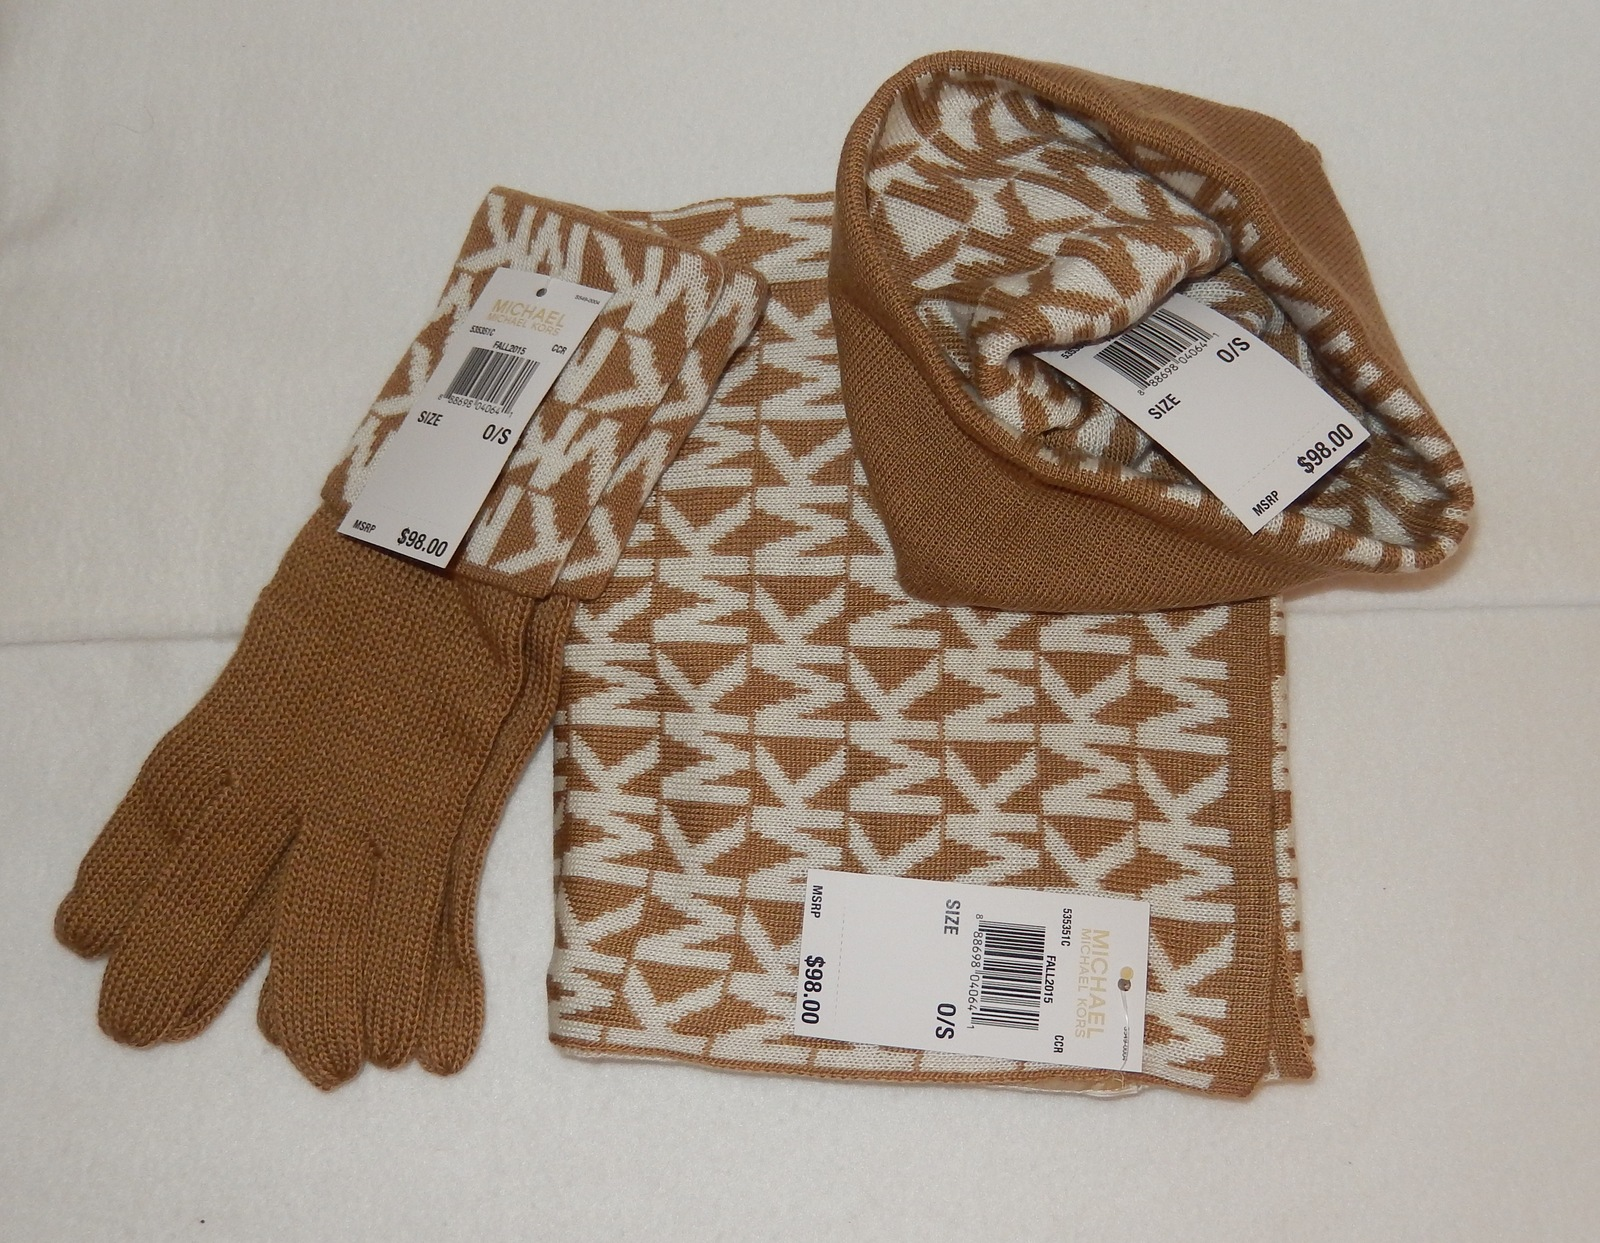 michael kors scarf hat gloves set beige white mk logo